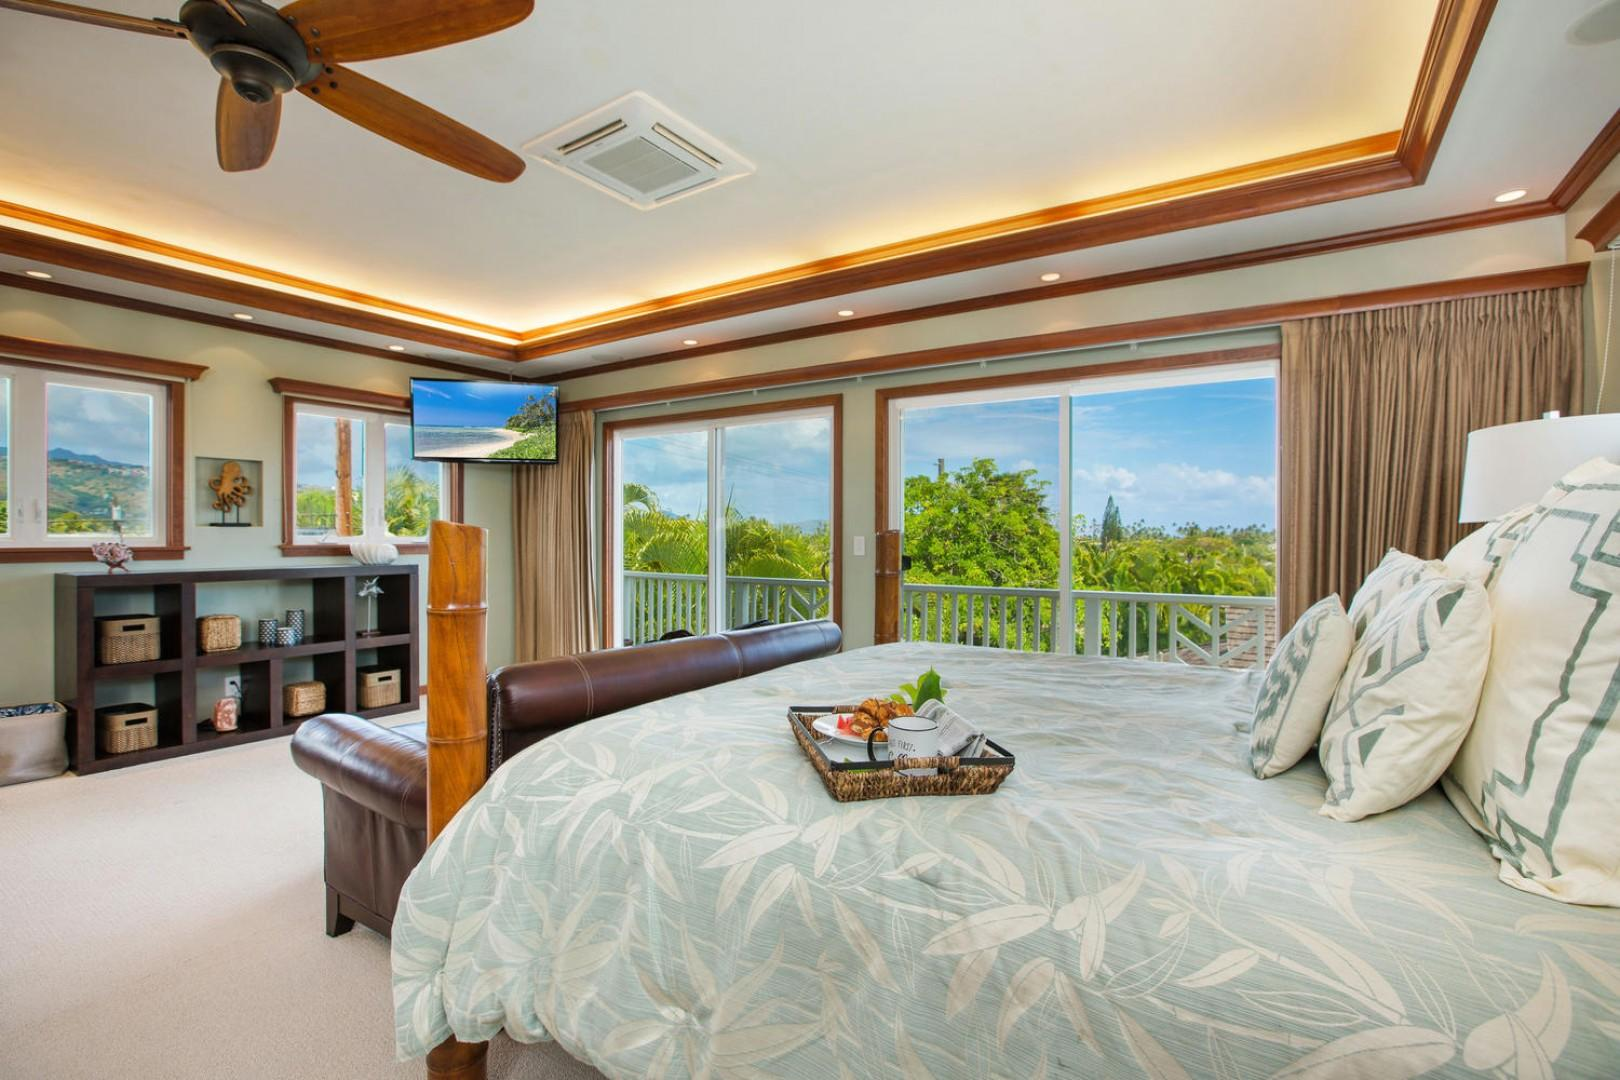 The master bedroom with peek-a-boo ocean views and gorgeous mountain views.